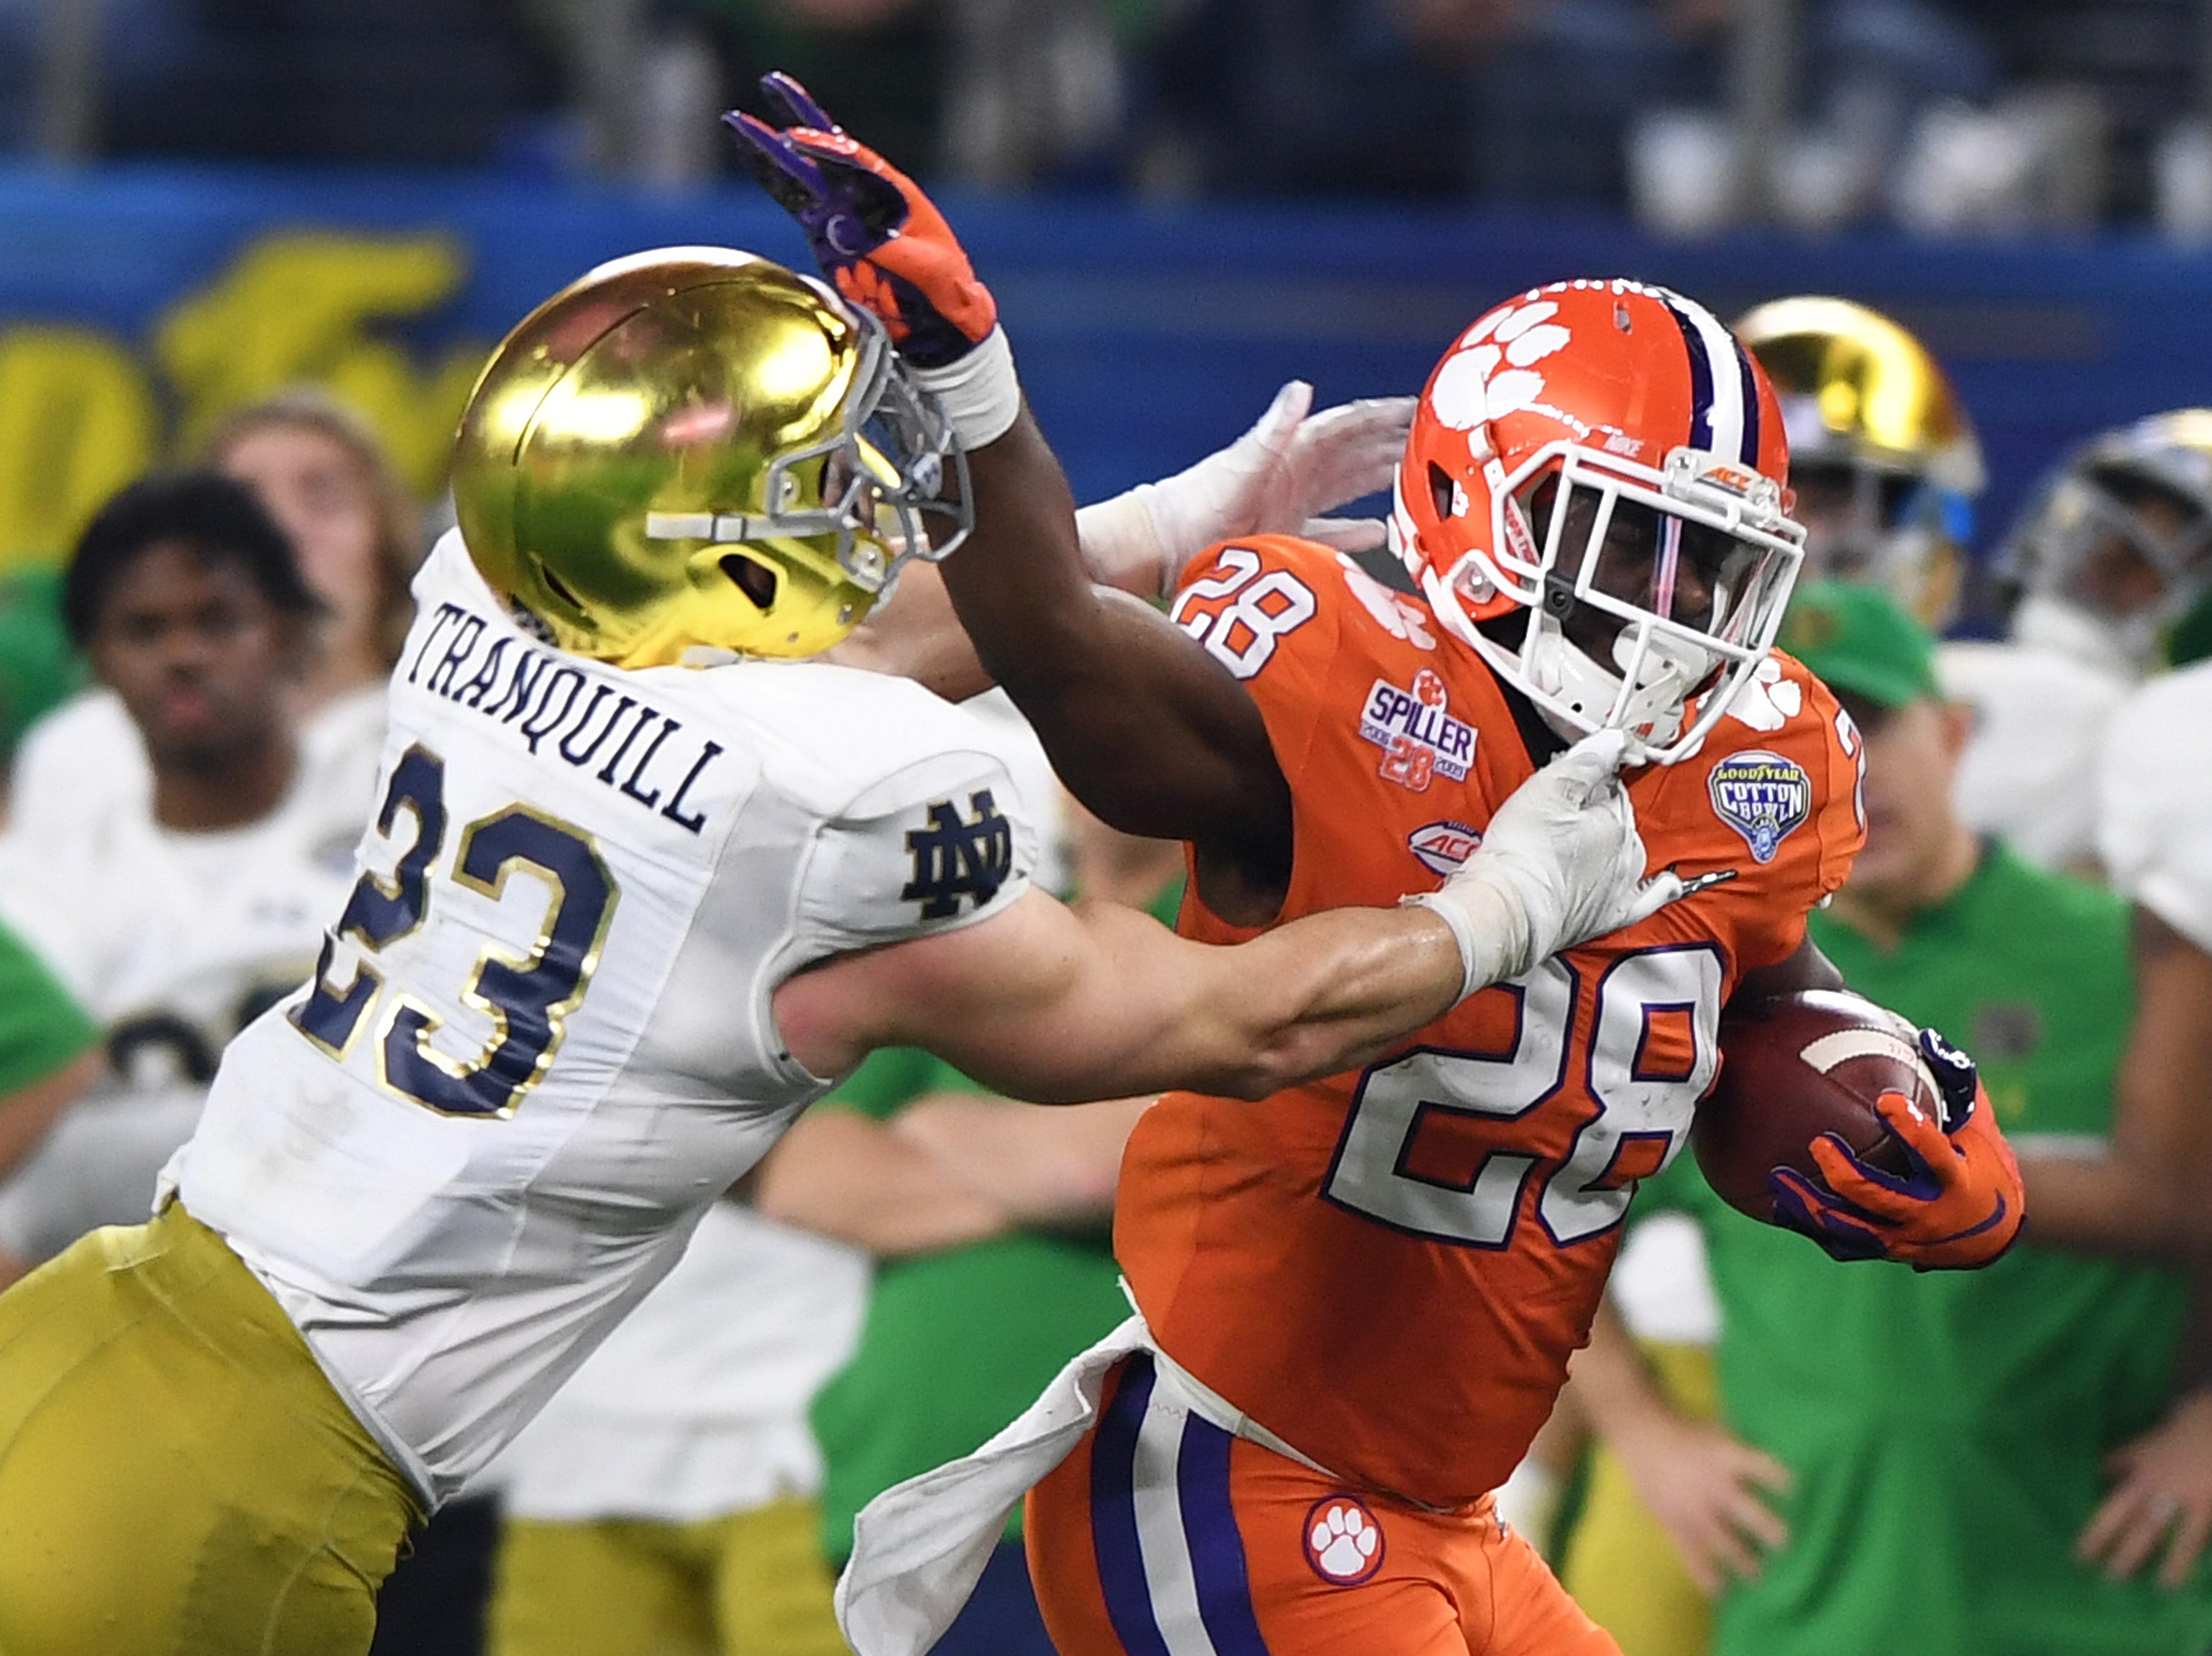 Notre Dame linebacker Drue Tranquill (23) tries to stop Clemson running back Tavien Feaster (28) during the 4th quarter of the Goodyear Cotton Bowl at AT&T stadium in Arlington, TX Saturday, December 29, 2018.